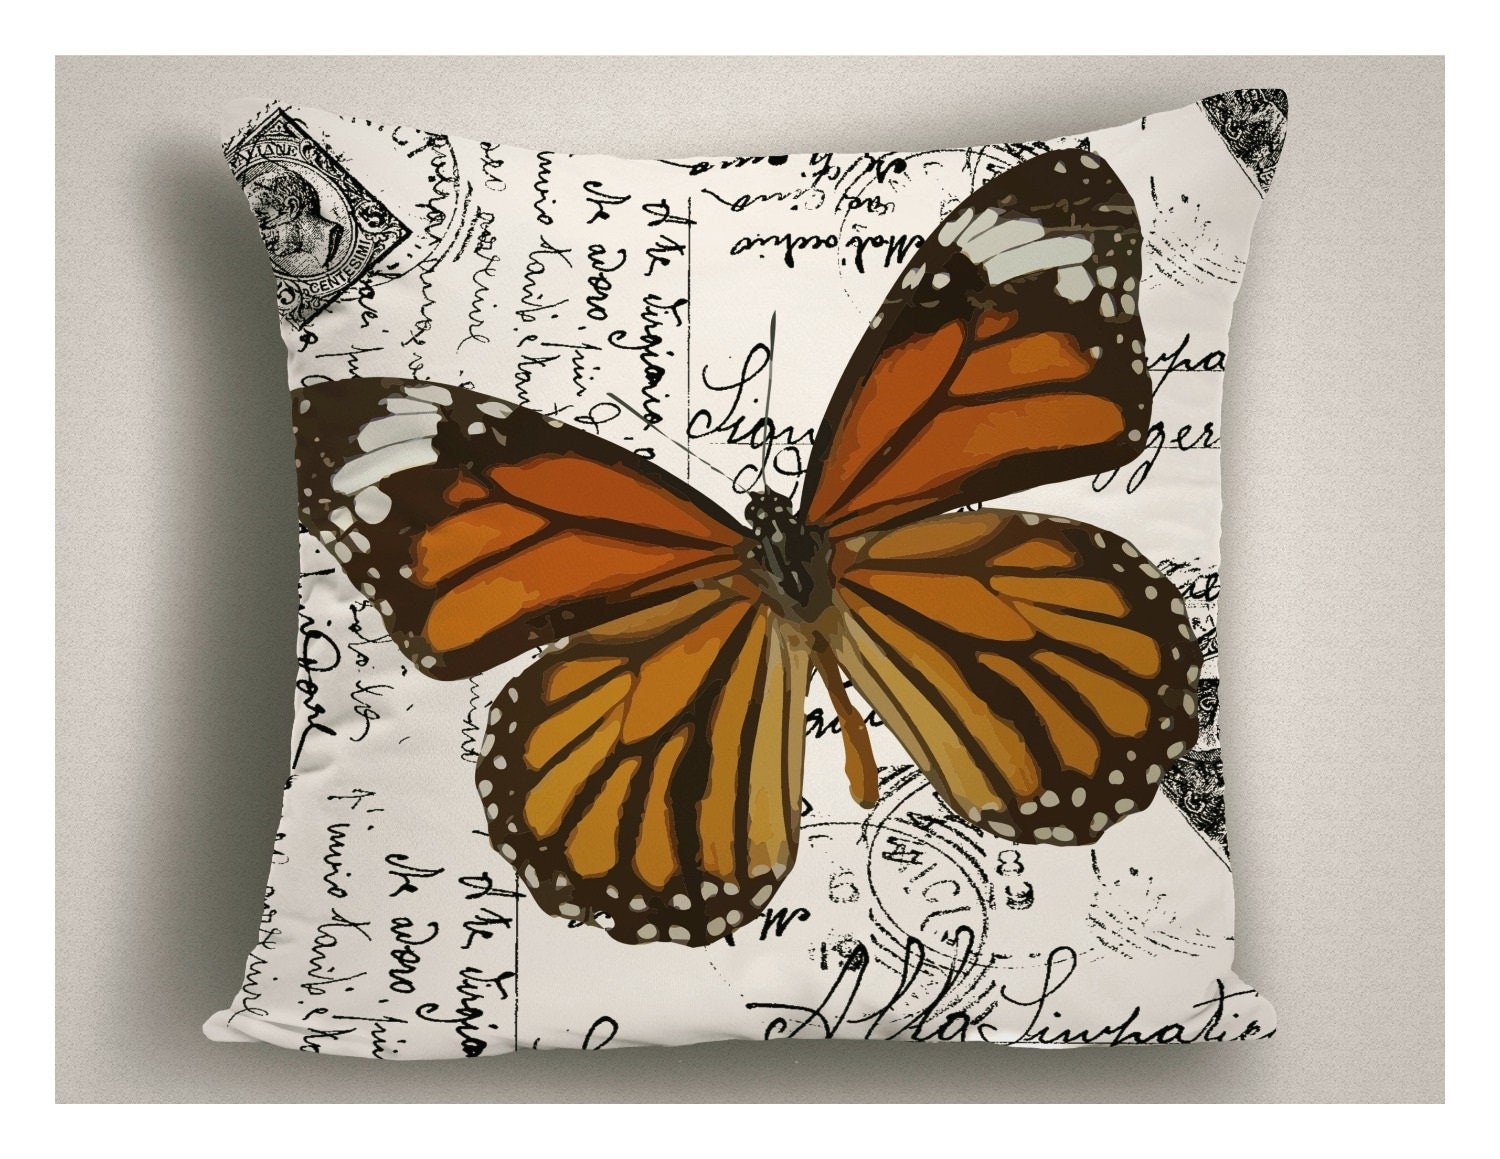 Unique Outdoor Pillow Script Writing Monarch Butterfly, Patio Pillow Cover,  Outdoor Pillows With Sayings, Decorative Outdoor Pillow Cushion